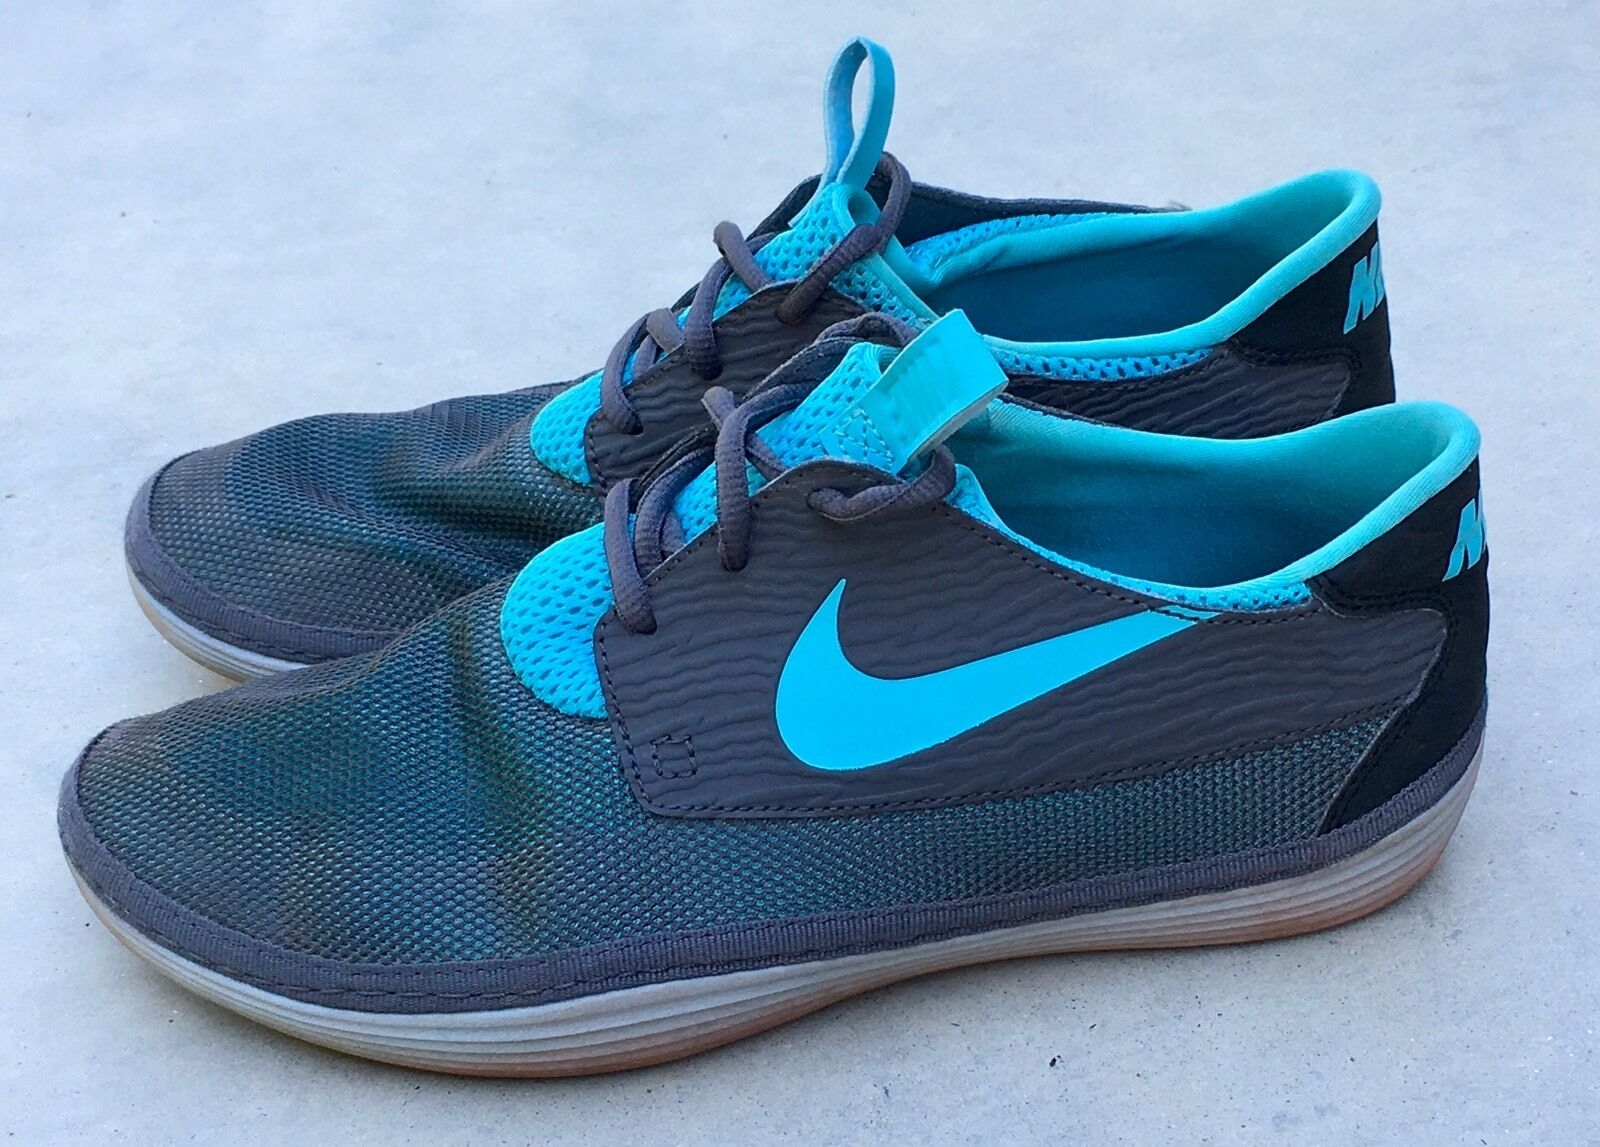 Nike Solarsoft Moccasin Athletic Running Shoes 555301-040 Gray Mens Sz 9 Seasonal price cuts, discount benefits